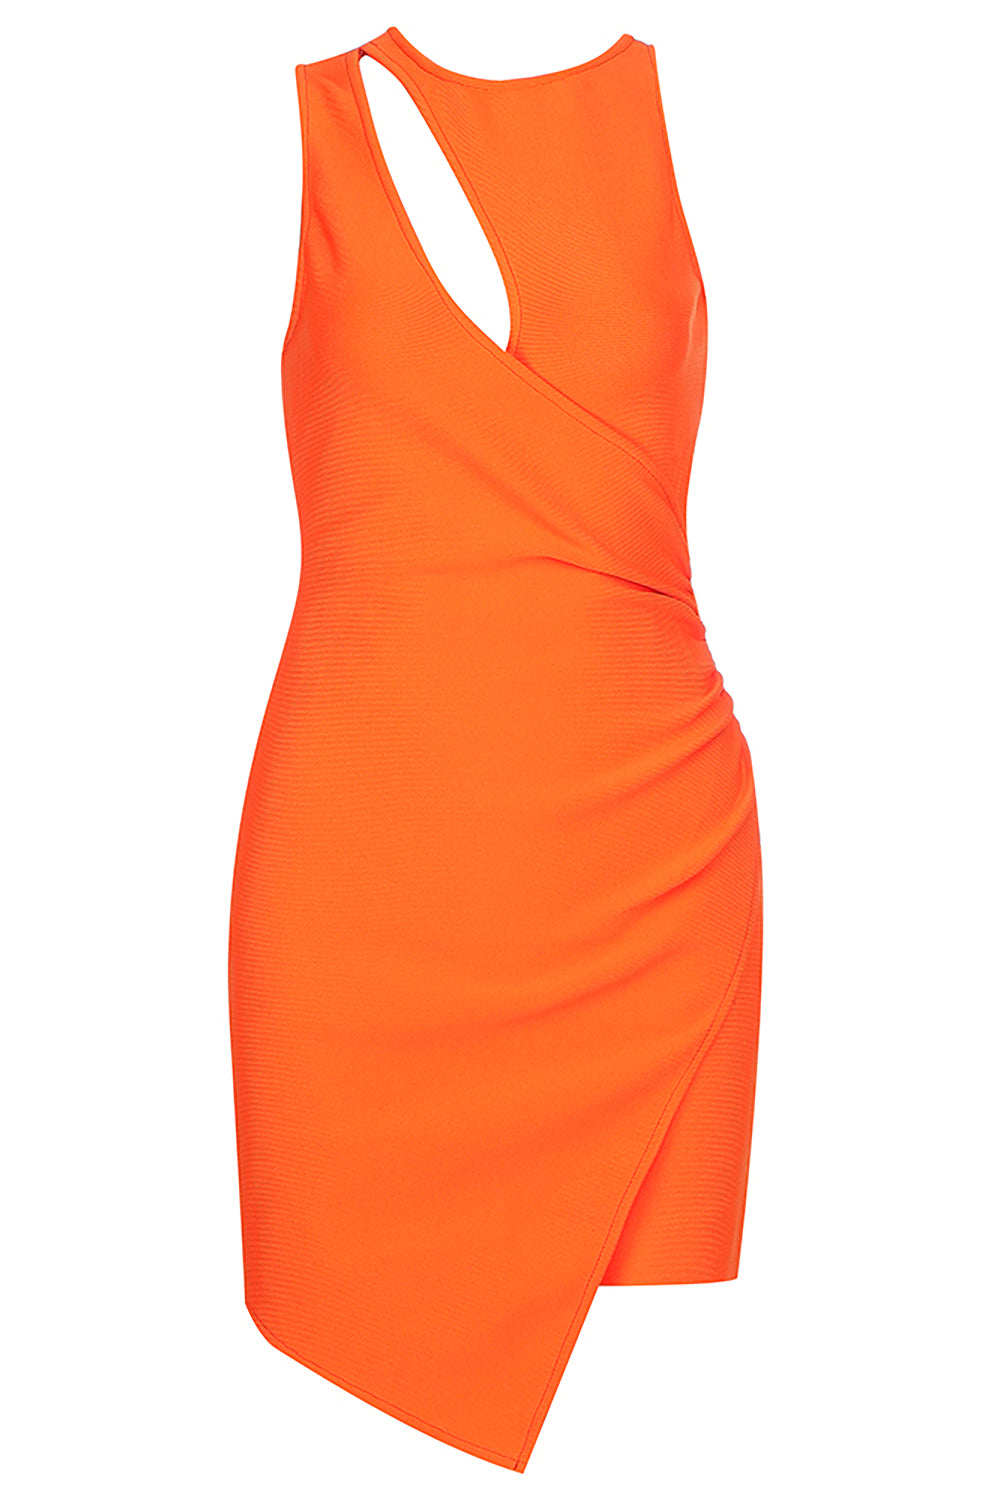 Orange O-Neck Hollow Bandage Mini Dress - CHICIDA